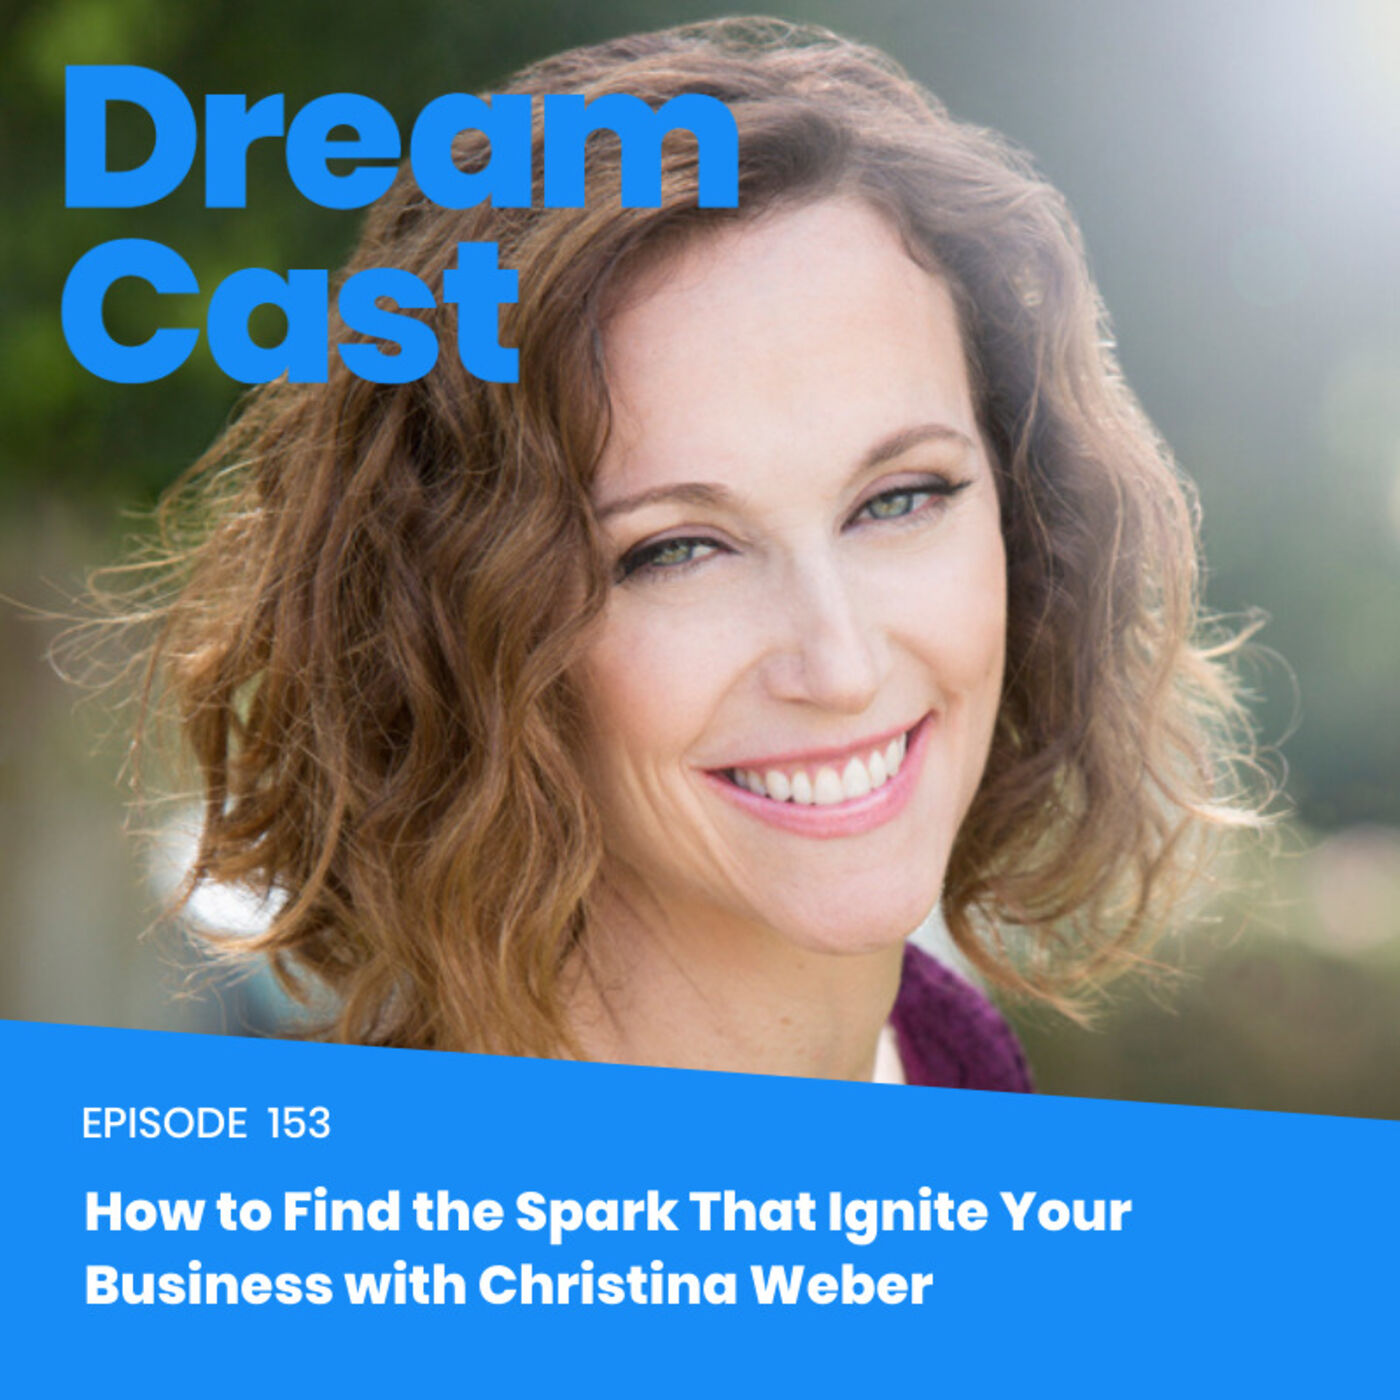 Episode 153 - How to Find the Spark That Ignites Your Business with Christina Weber